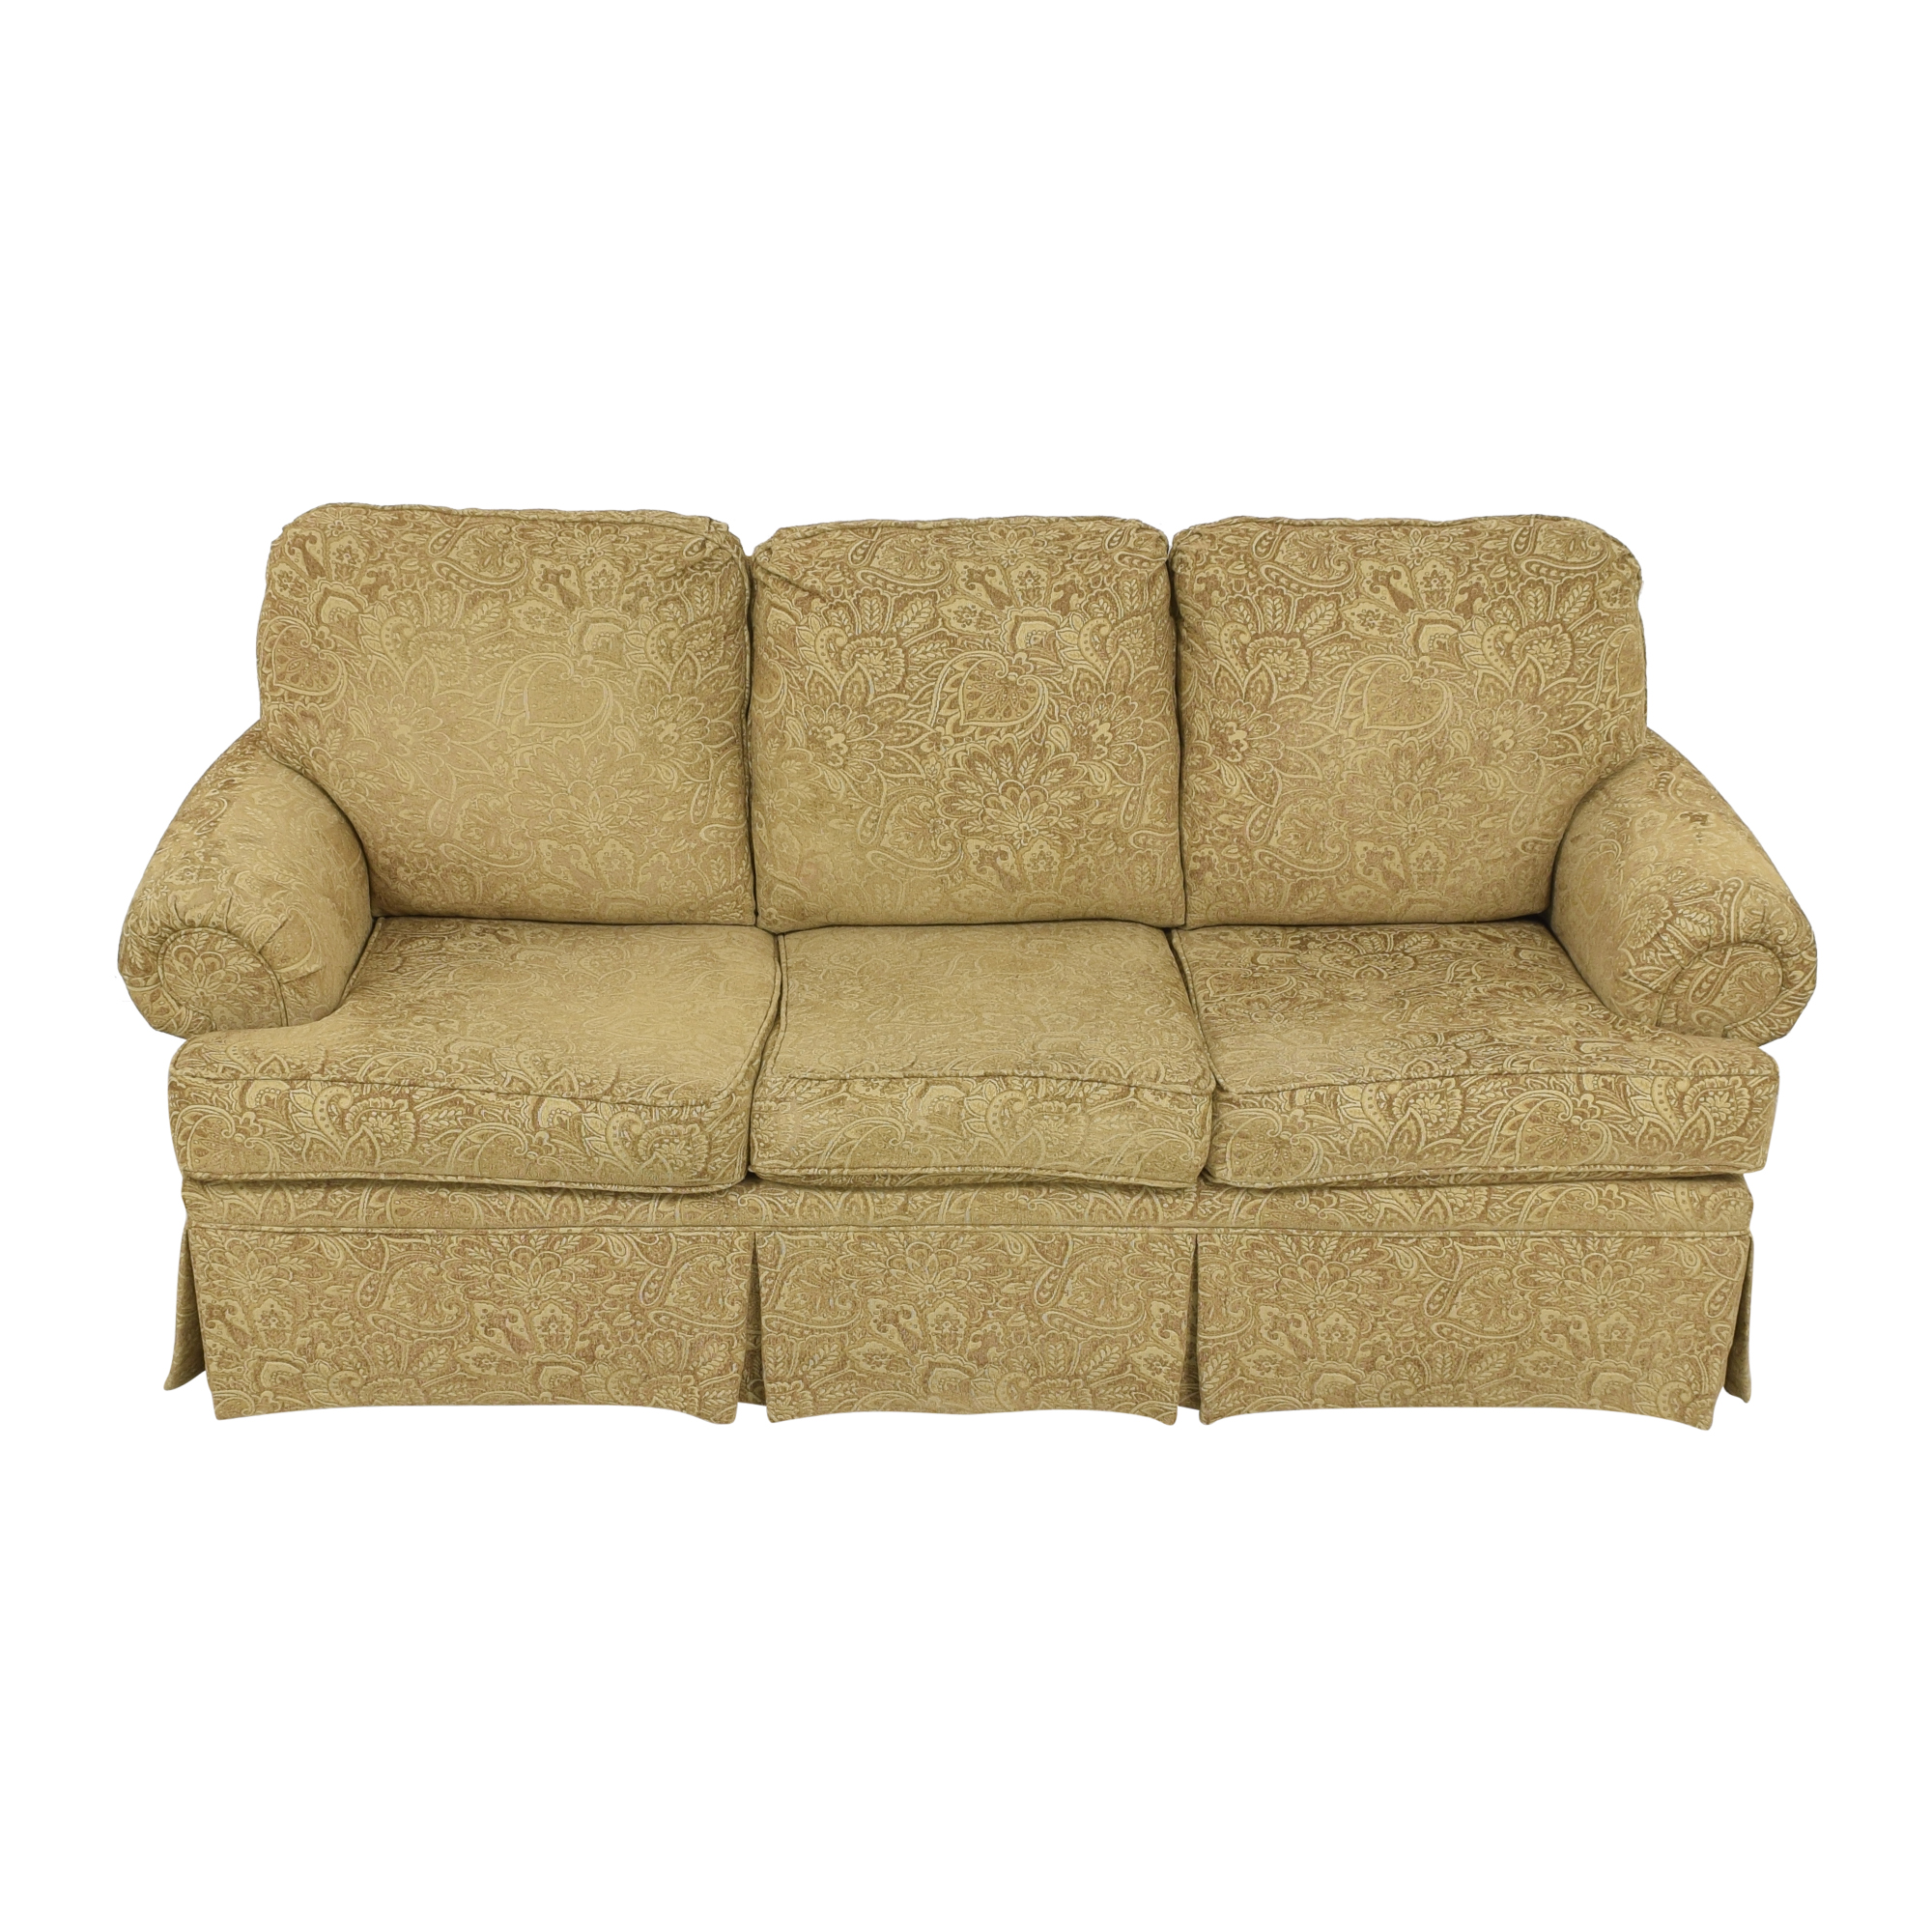 Clayton Marcus Sofa sale